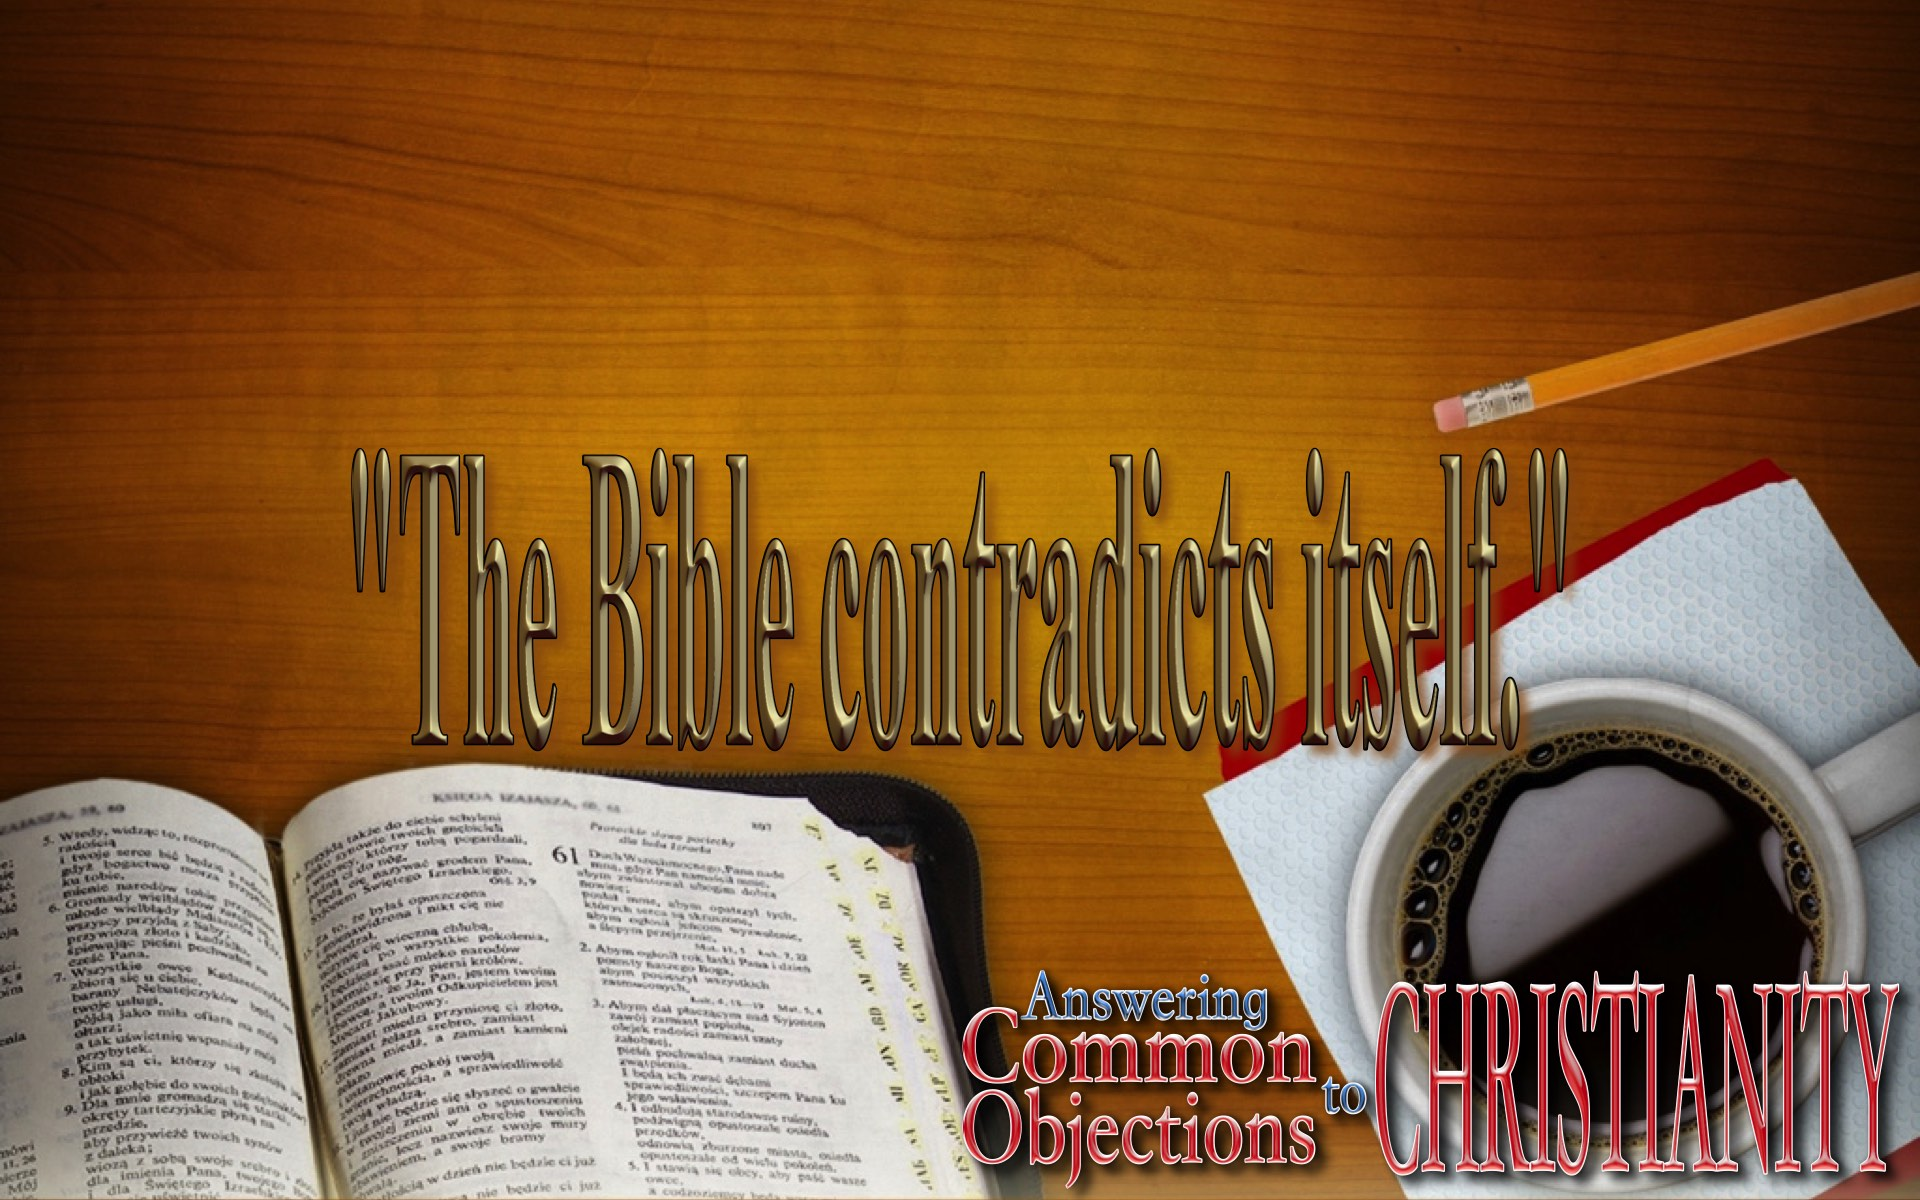 Answering Common Objections – The Bible Contradicts Itself